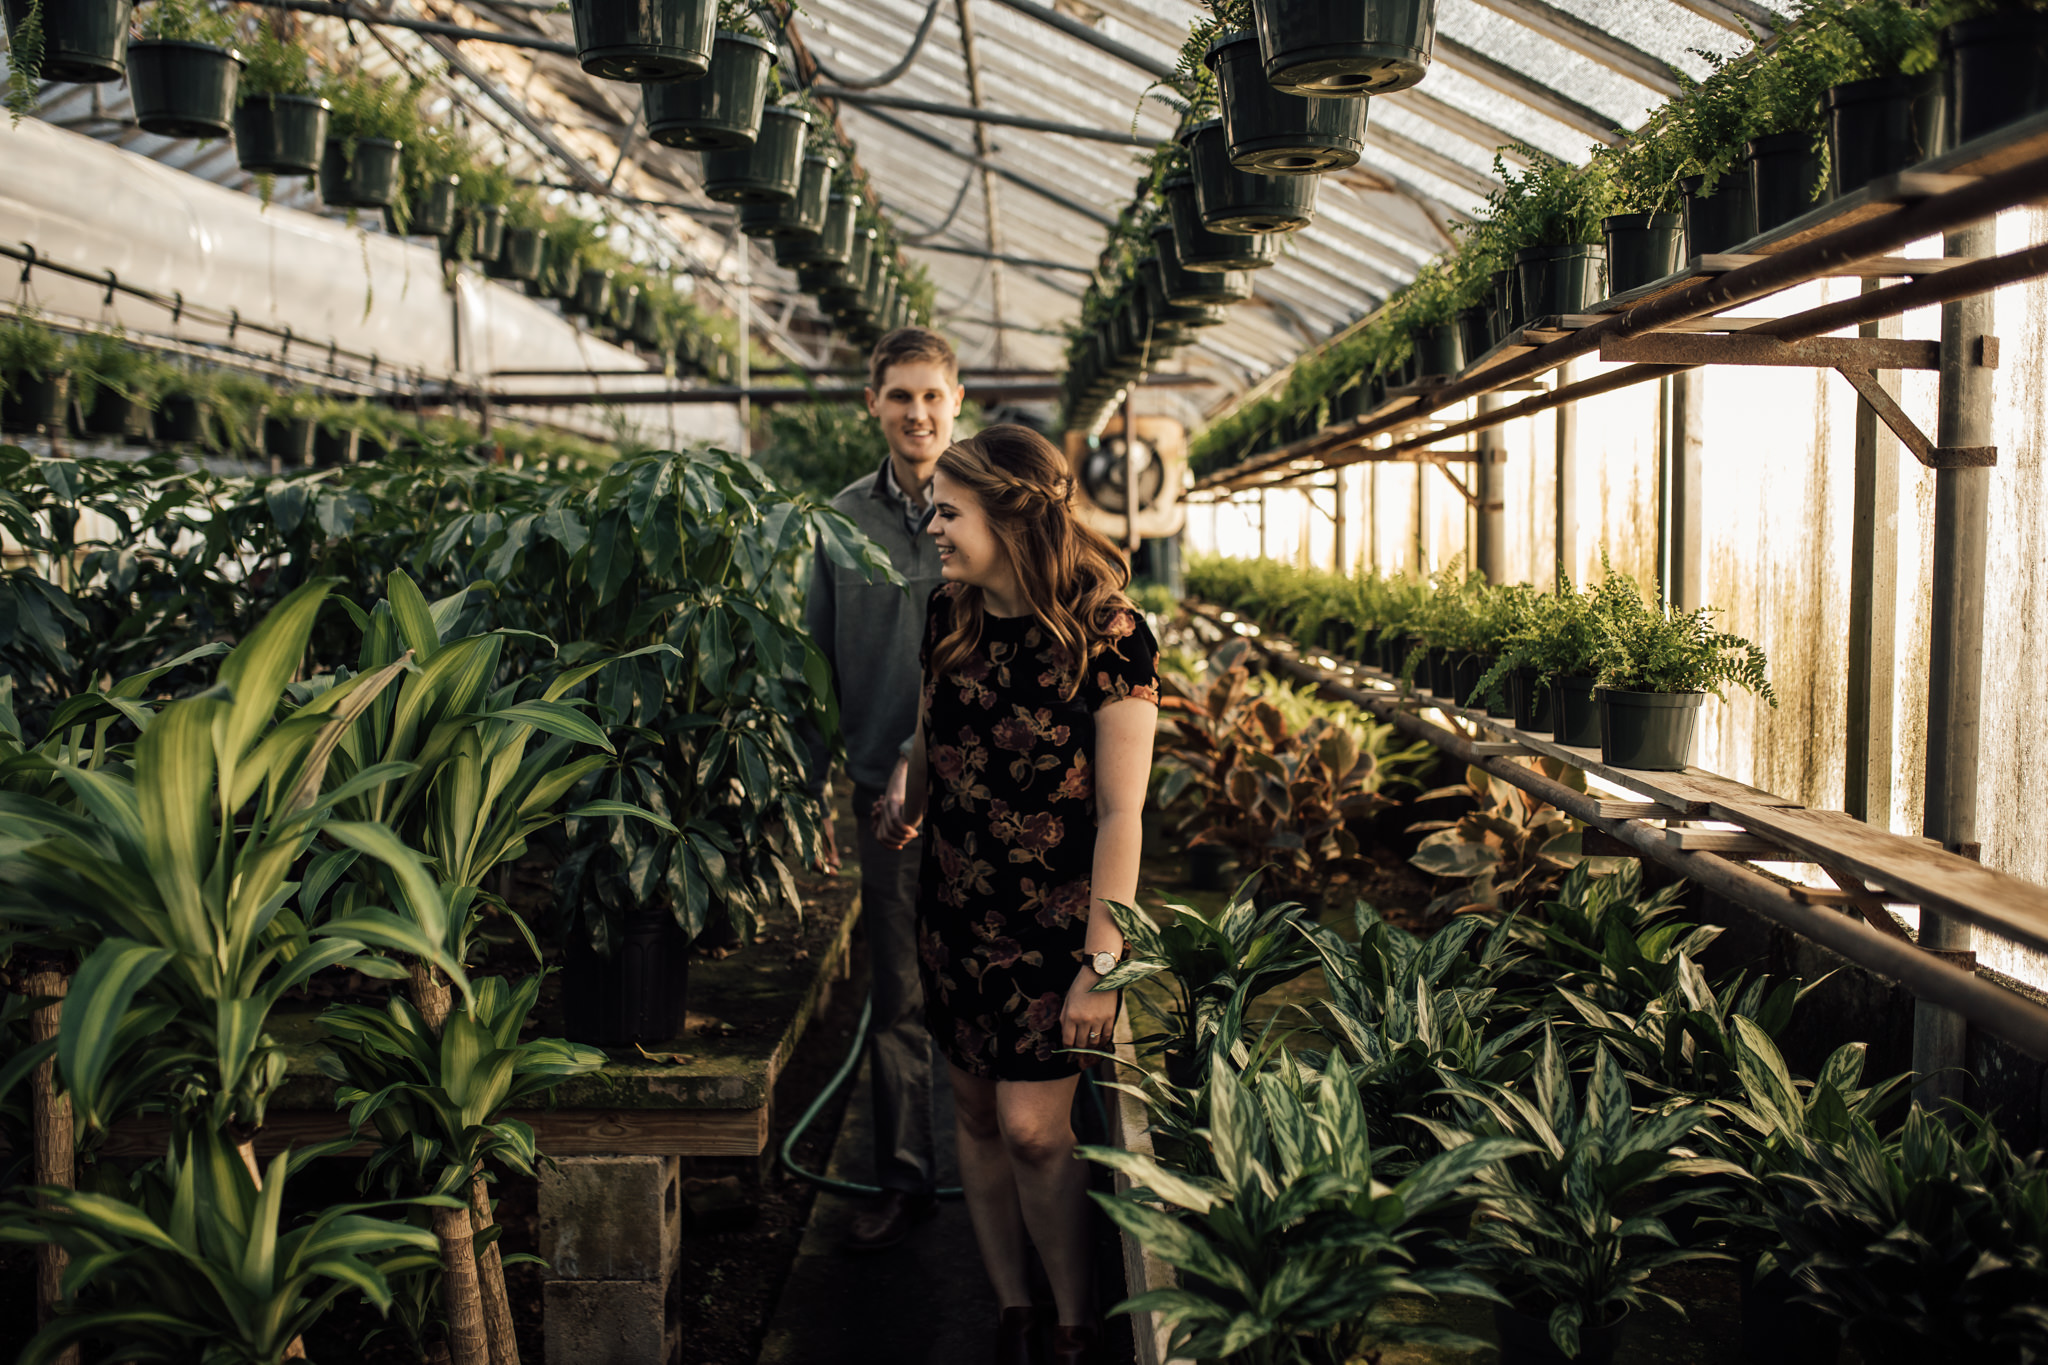 memphis-wedding-photographer-greenhouse-engagement-pictures-cassie-cook-photography-12.jpg